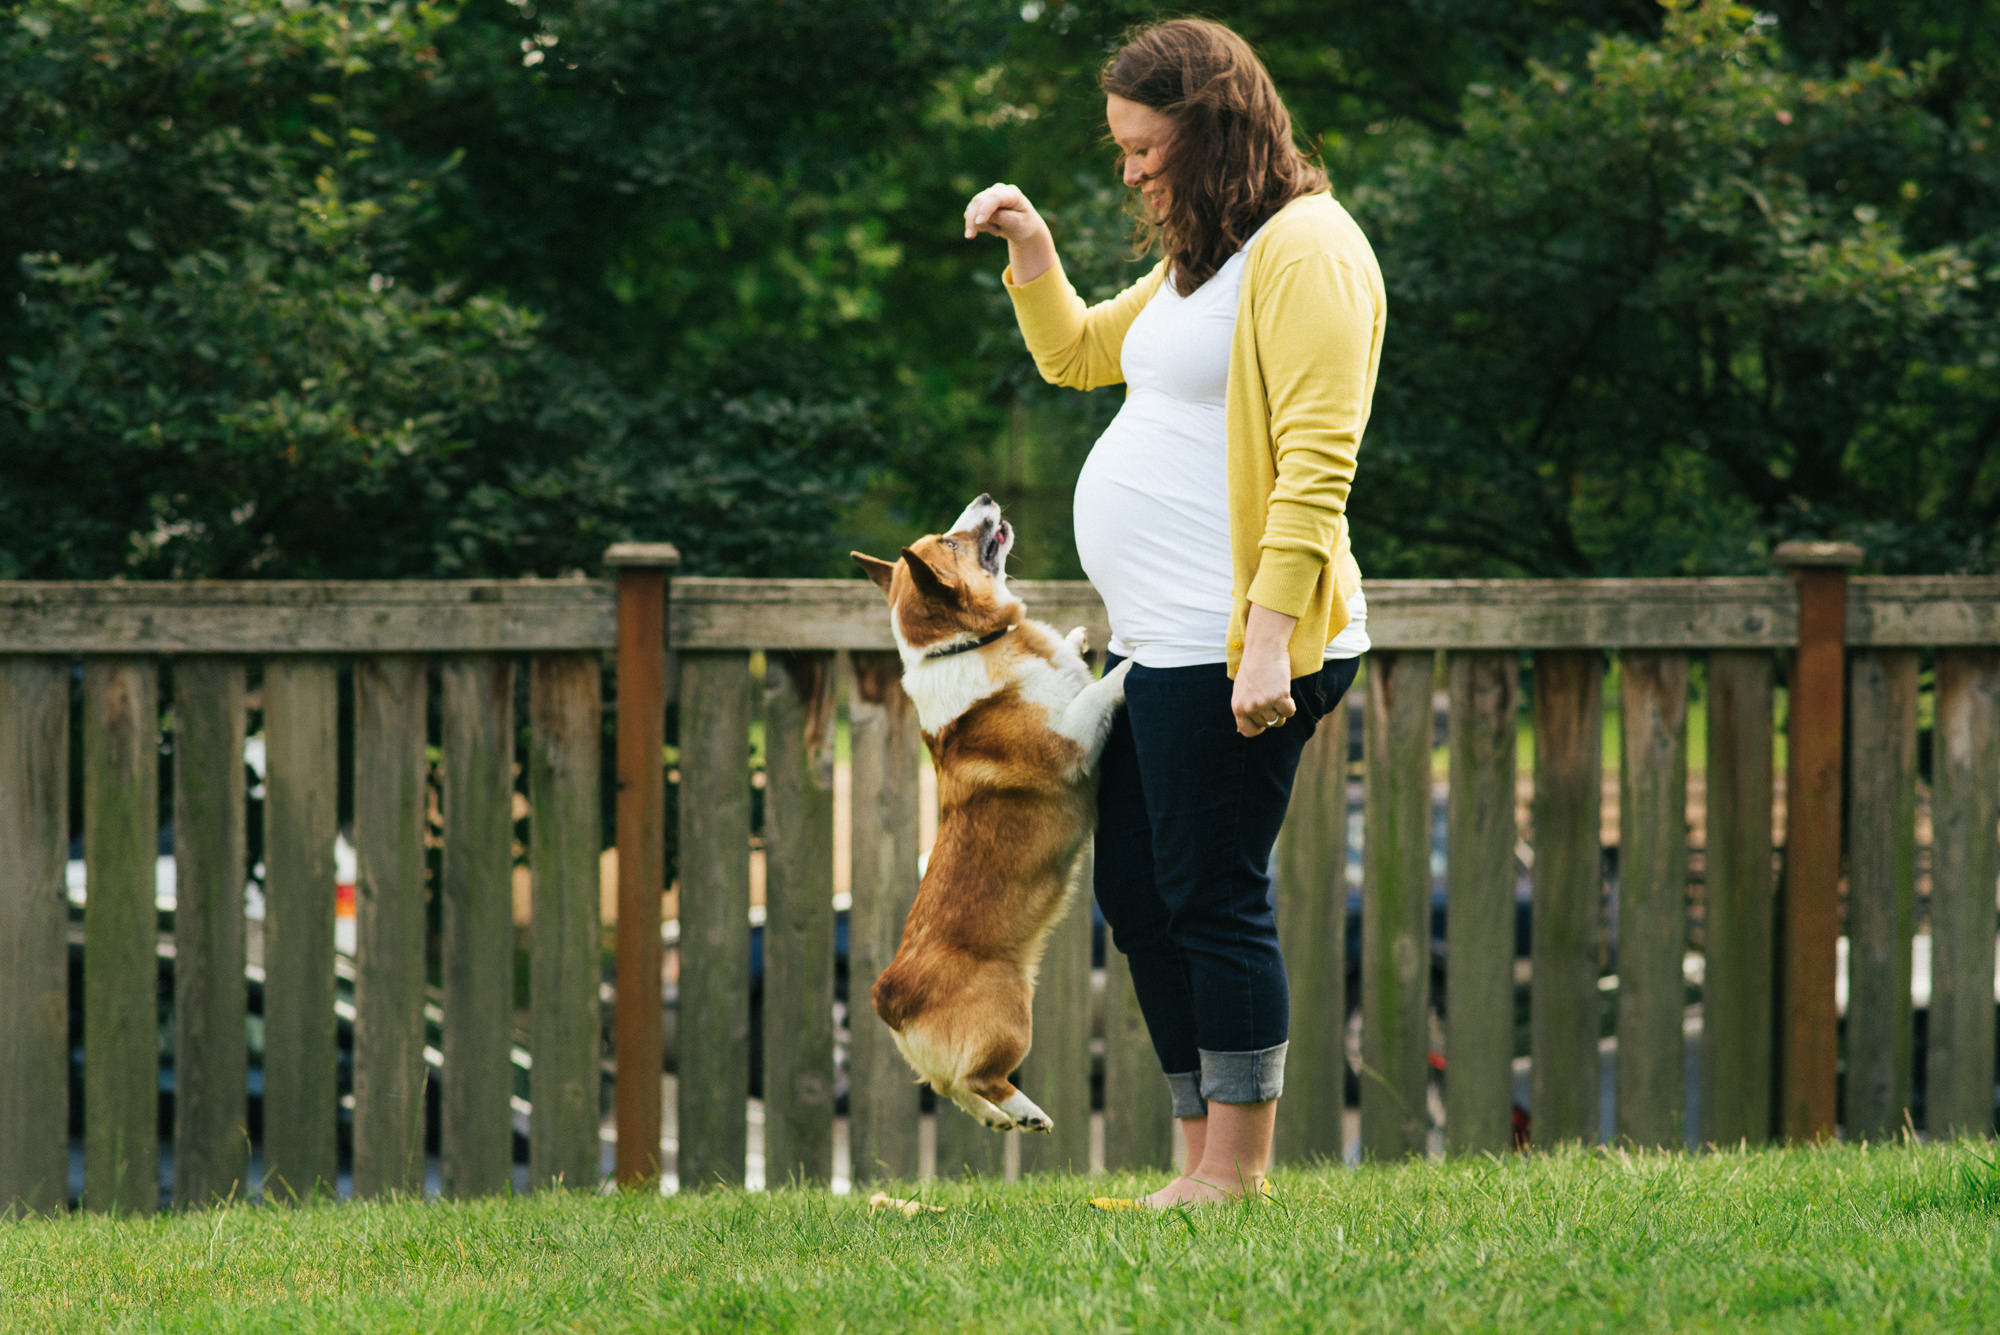 maternity photo of woman with dog doing tricks